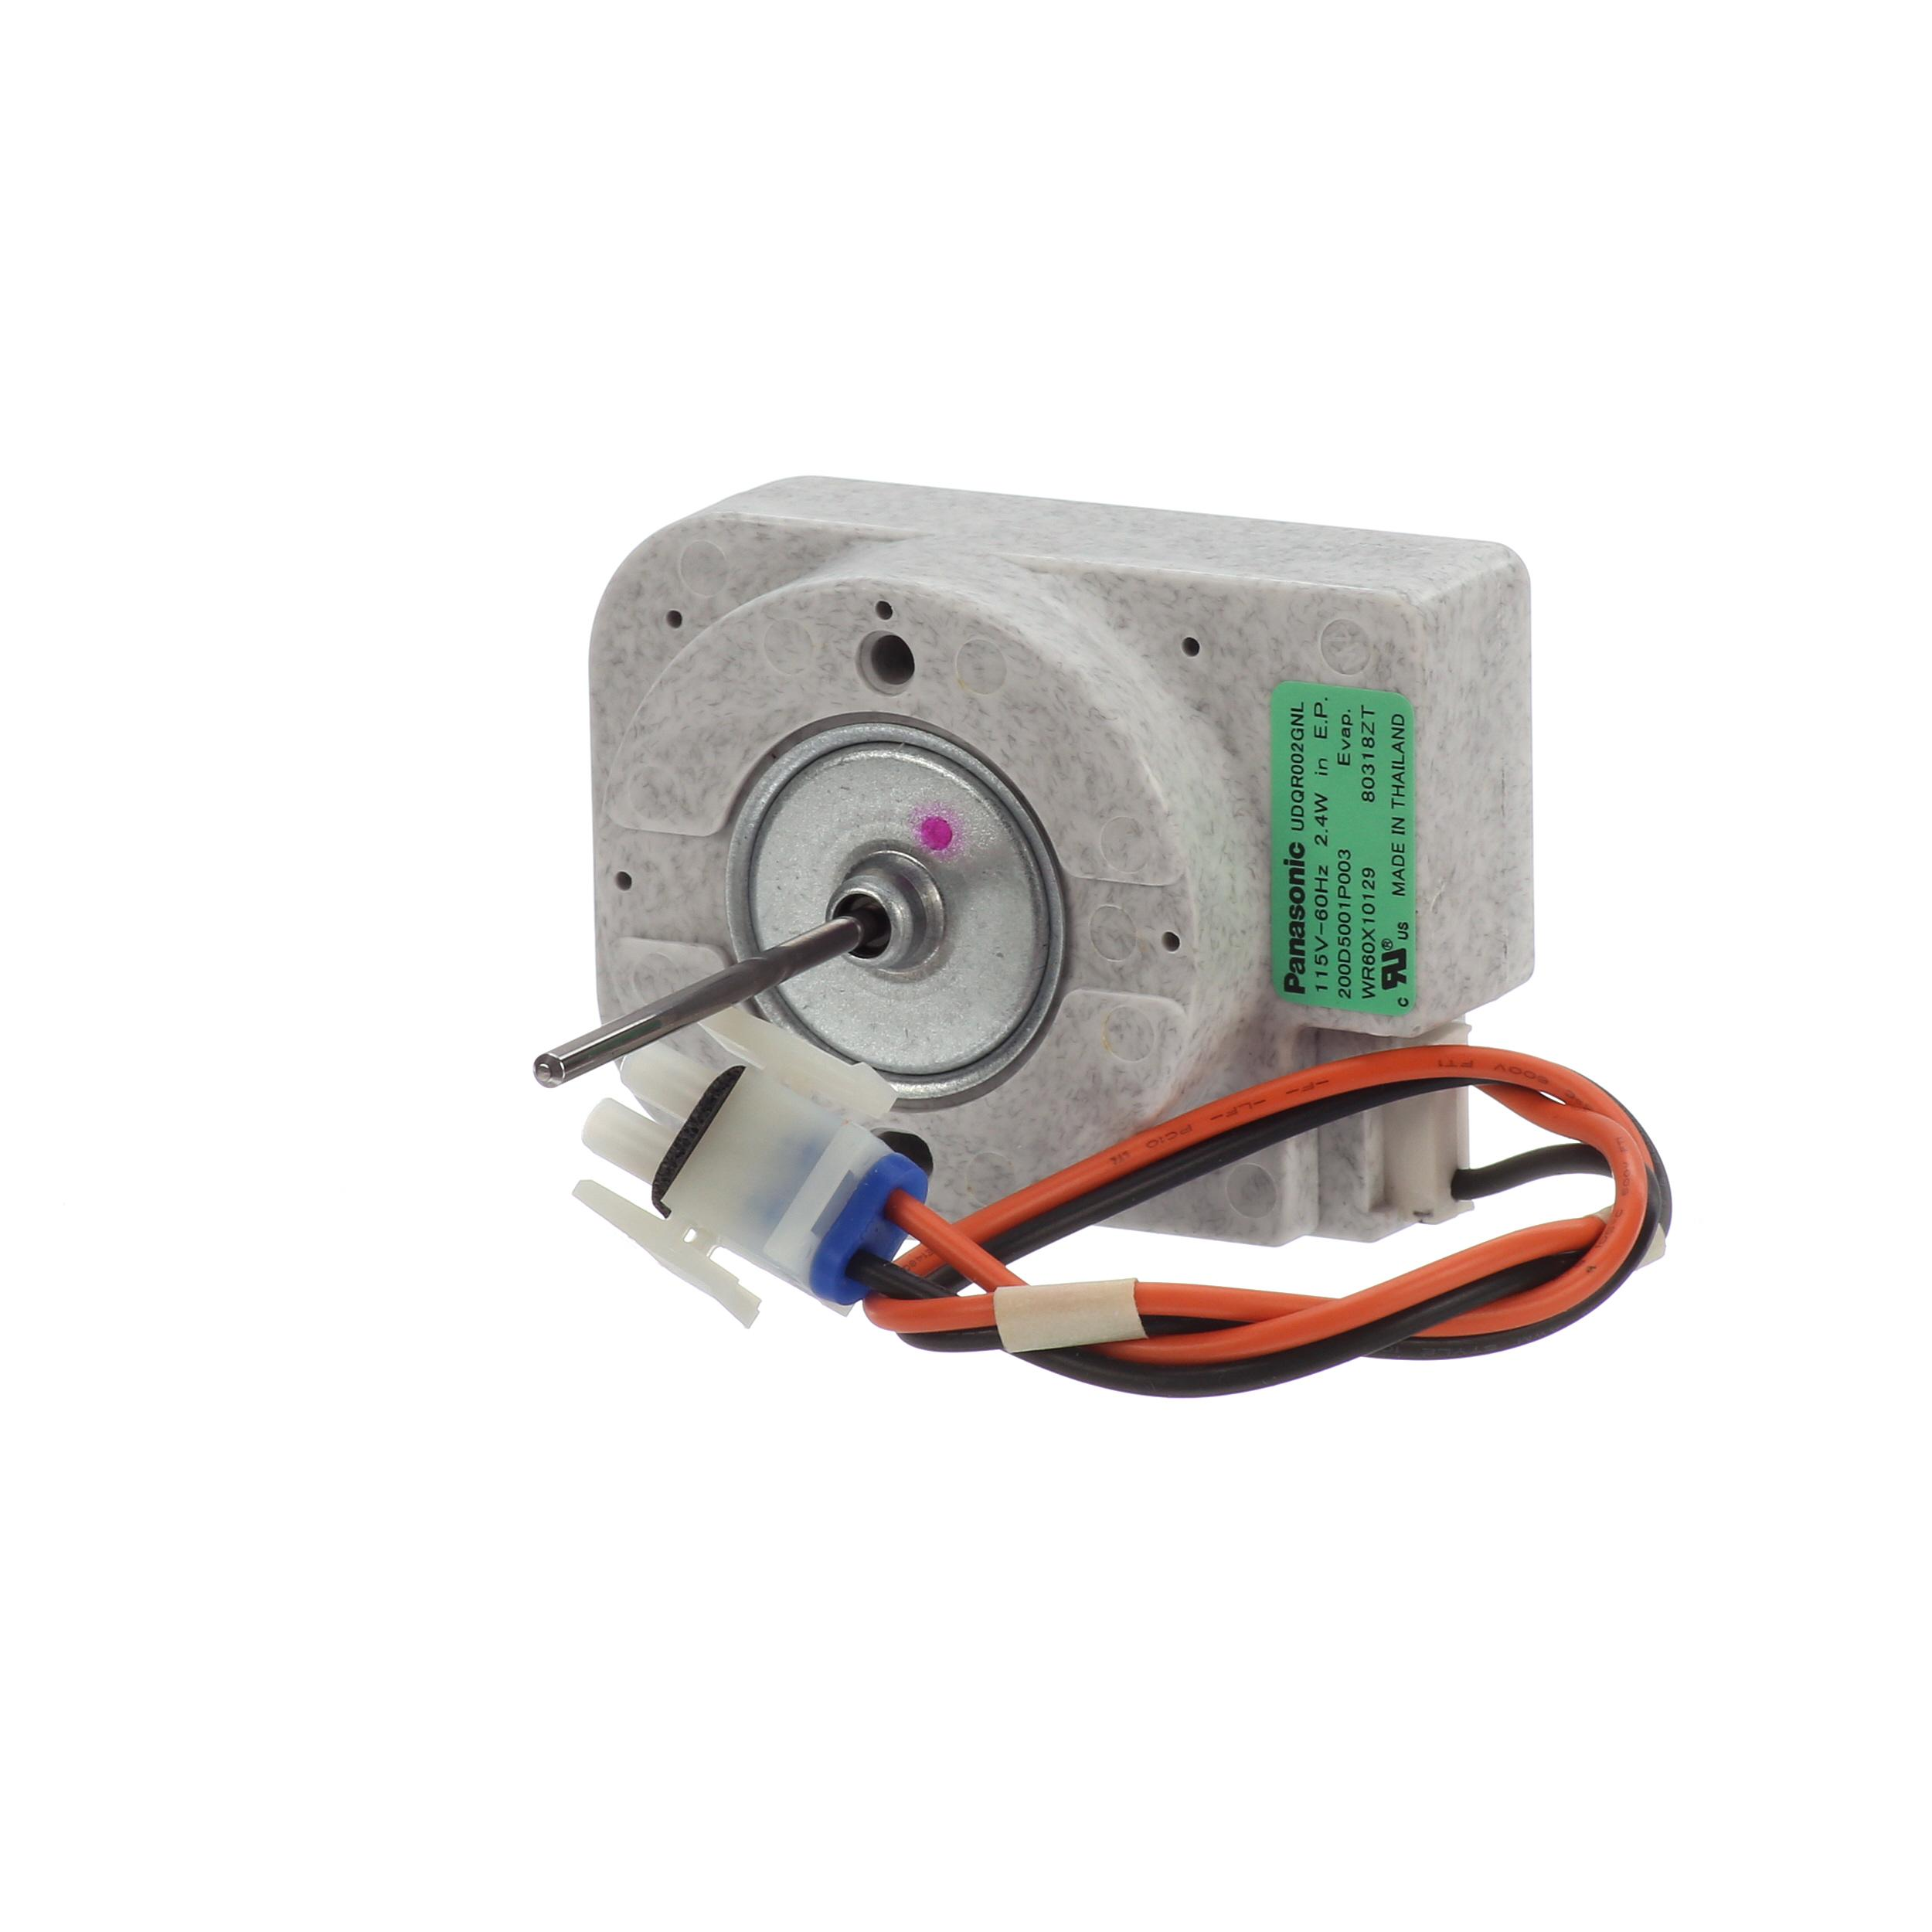 Ge motor part wr60x10257 for General electric motor parts